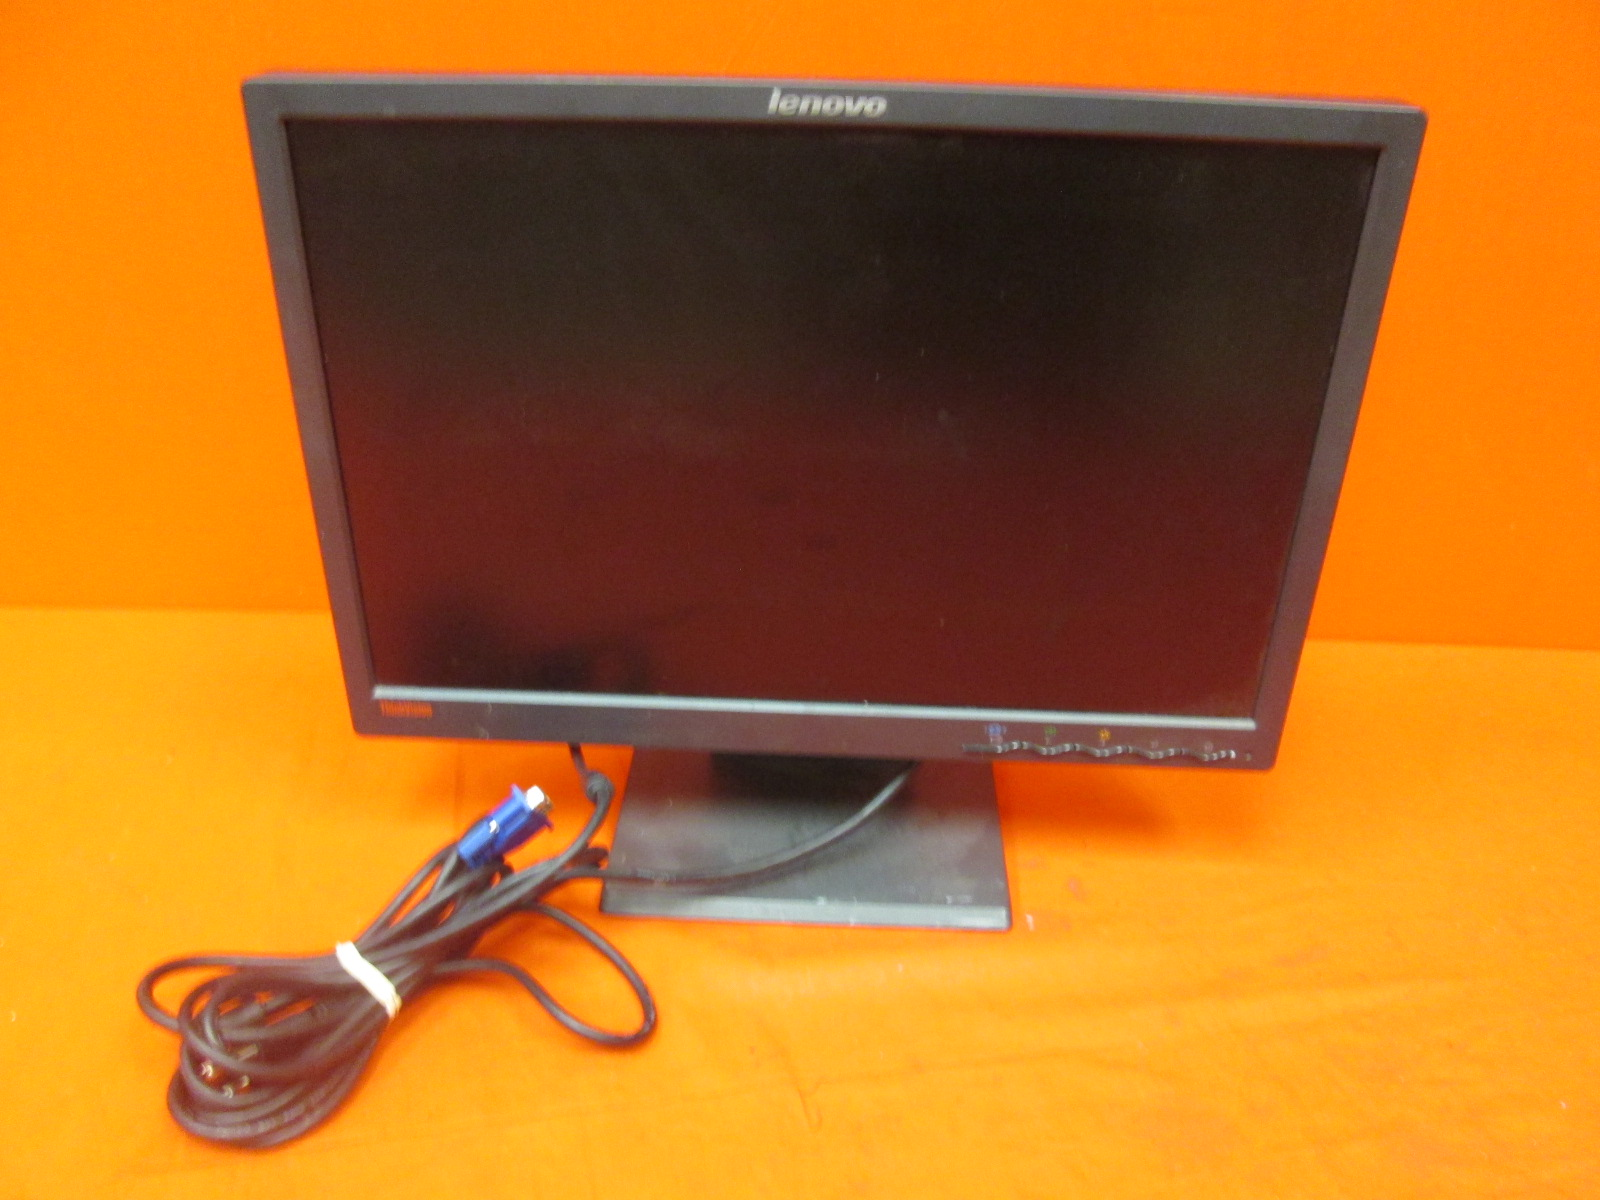 Lenovo Thinkvision L194WD 334-HB6 19 Widescreen LCD Monitor